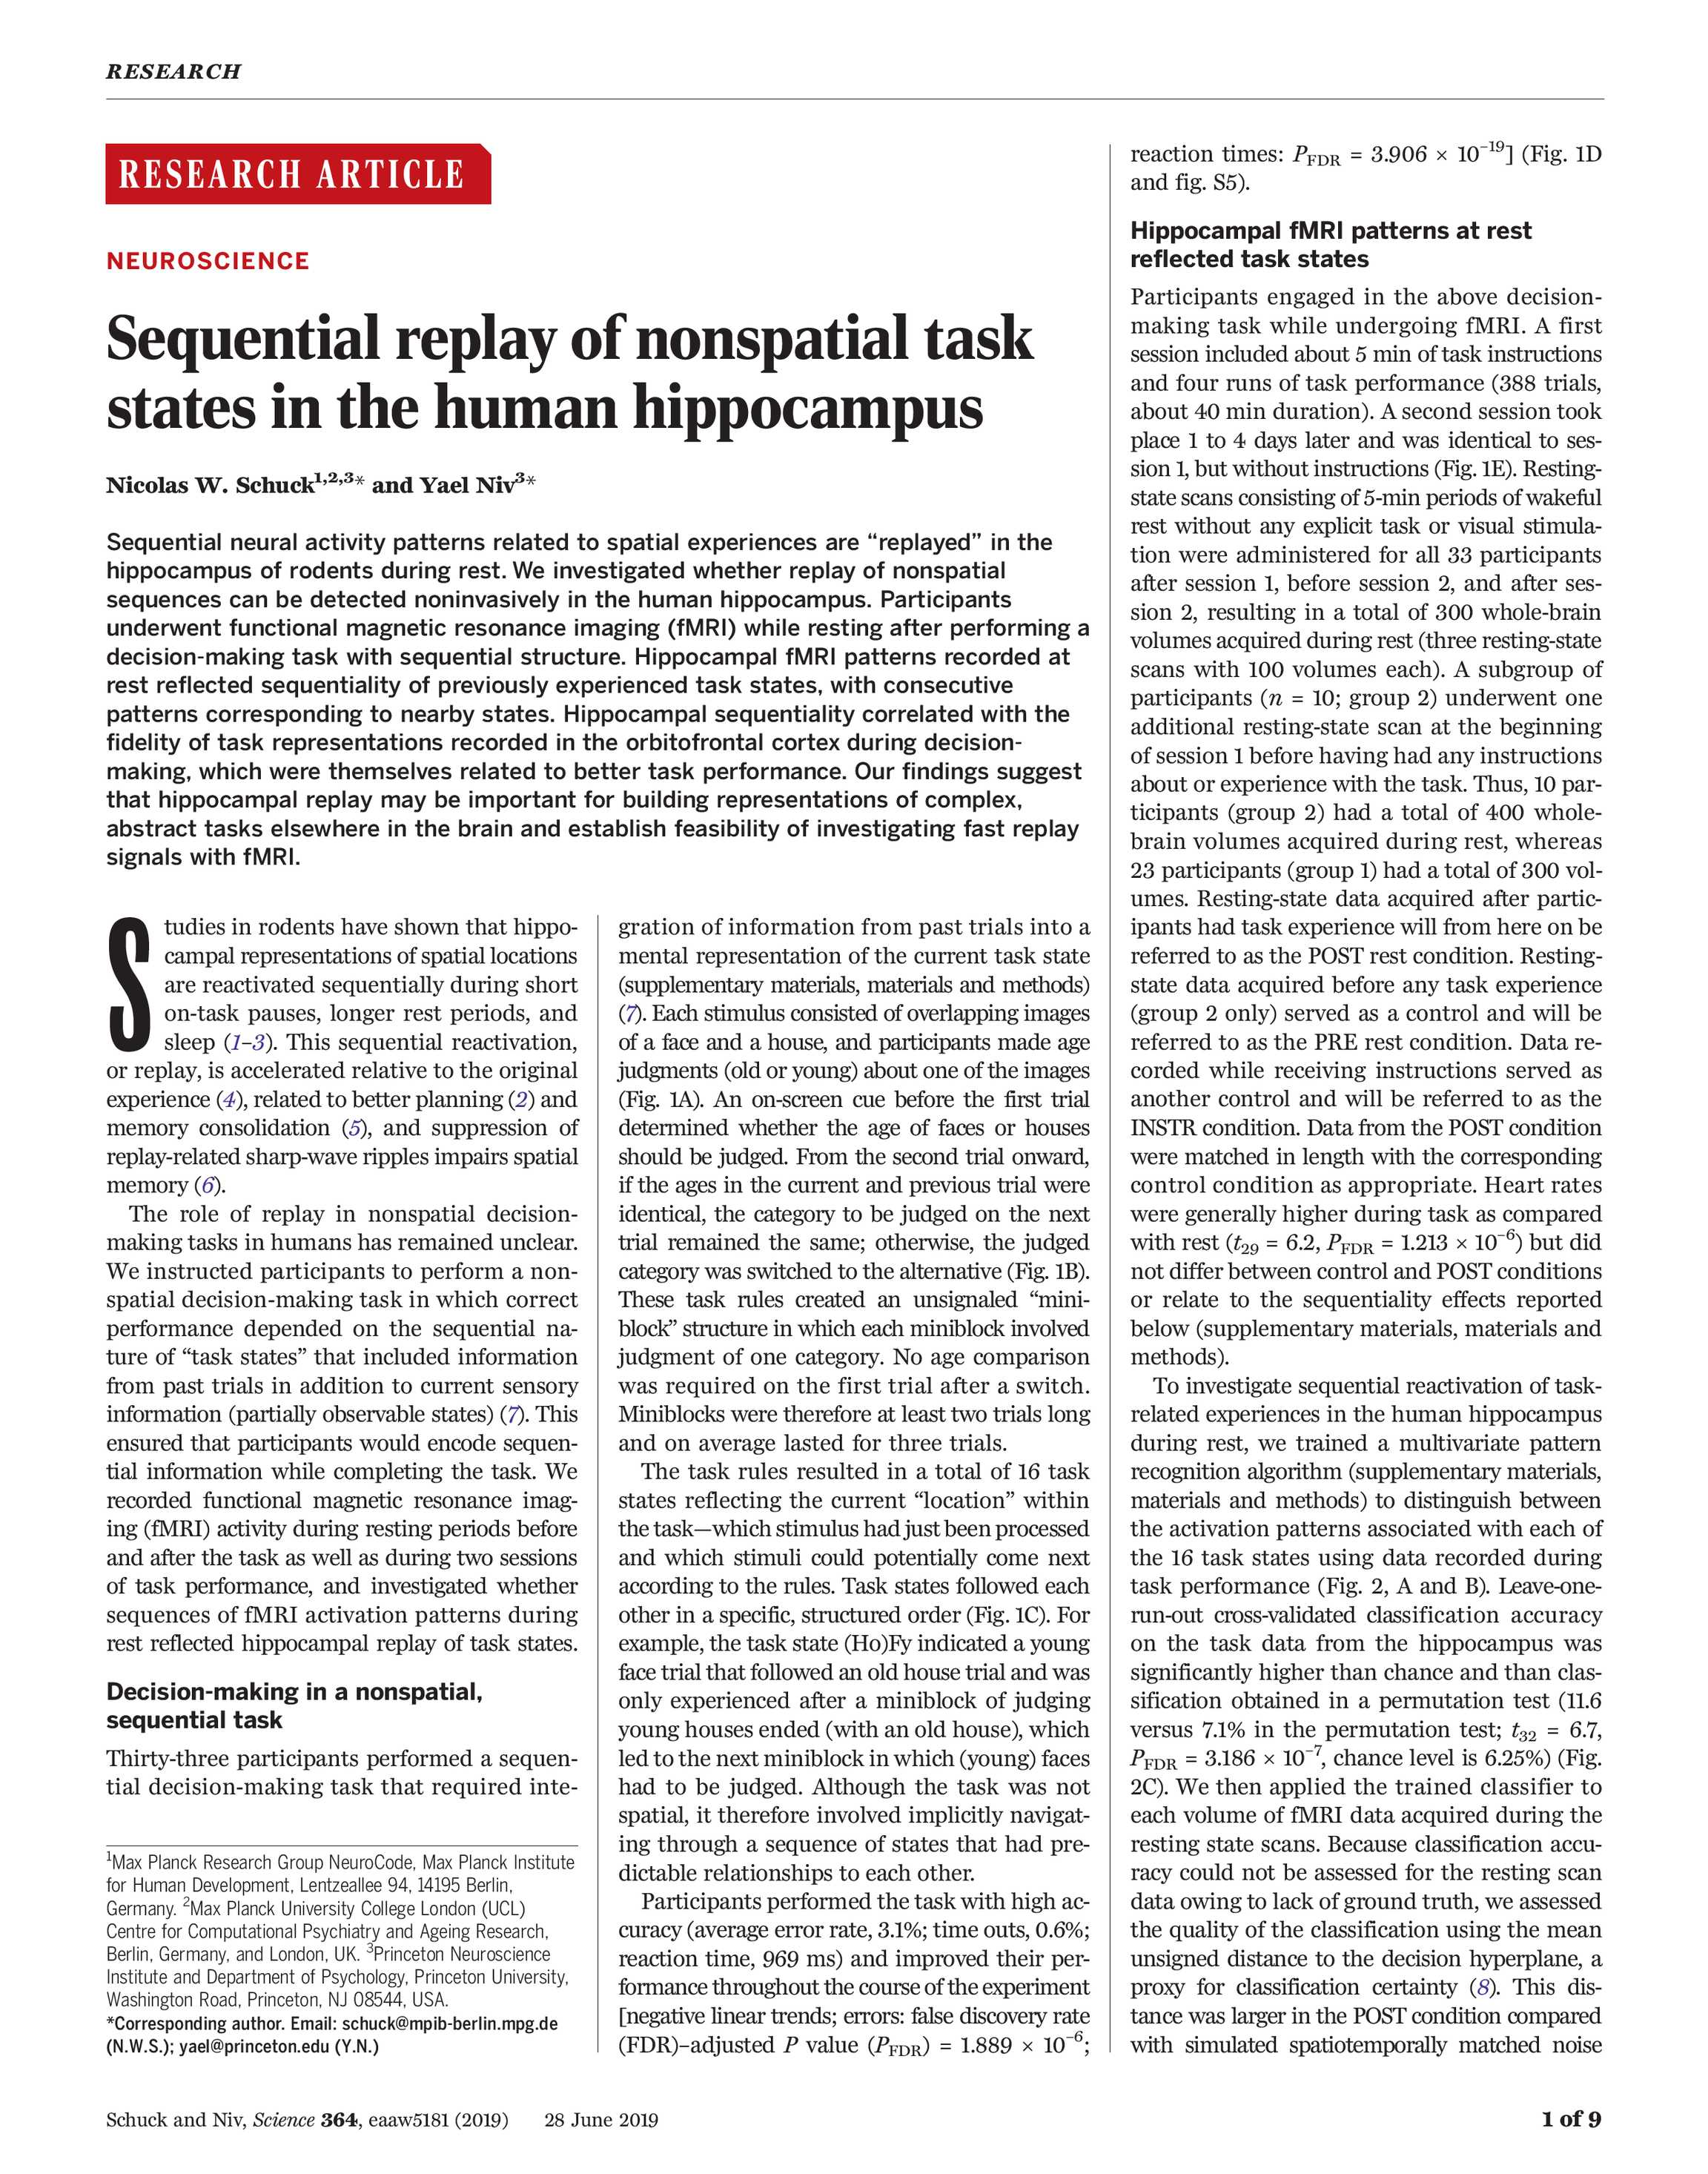 Science Magazine - June 28, 2019 - page 1254